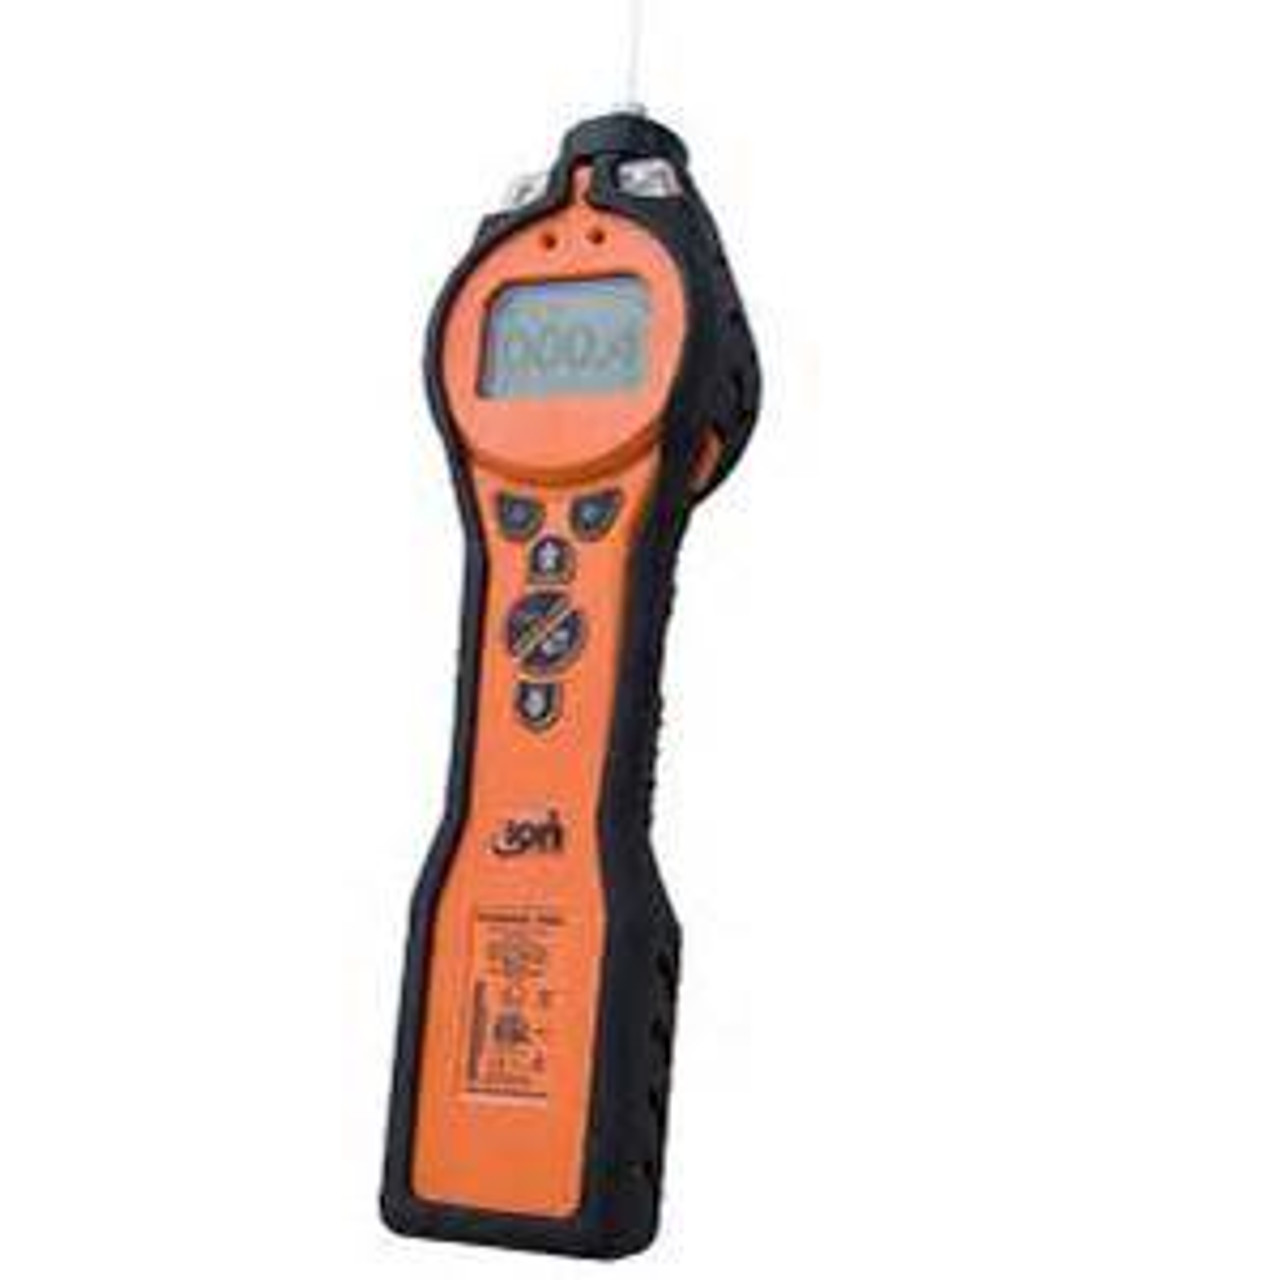 PhoCheck Tiger Base Instrument with Health & Safety and Full Data Logging  (Timed & Single, Push To Log)